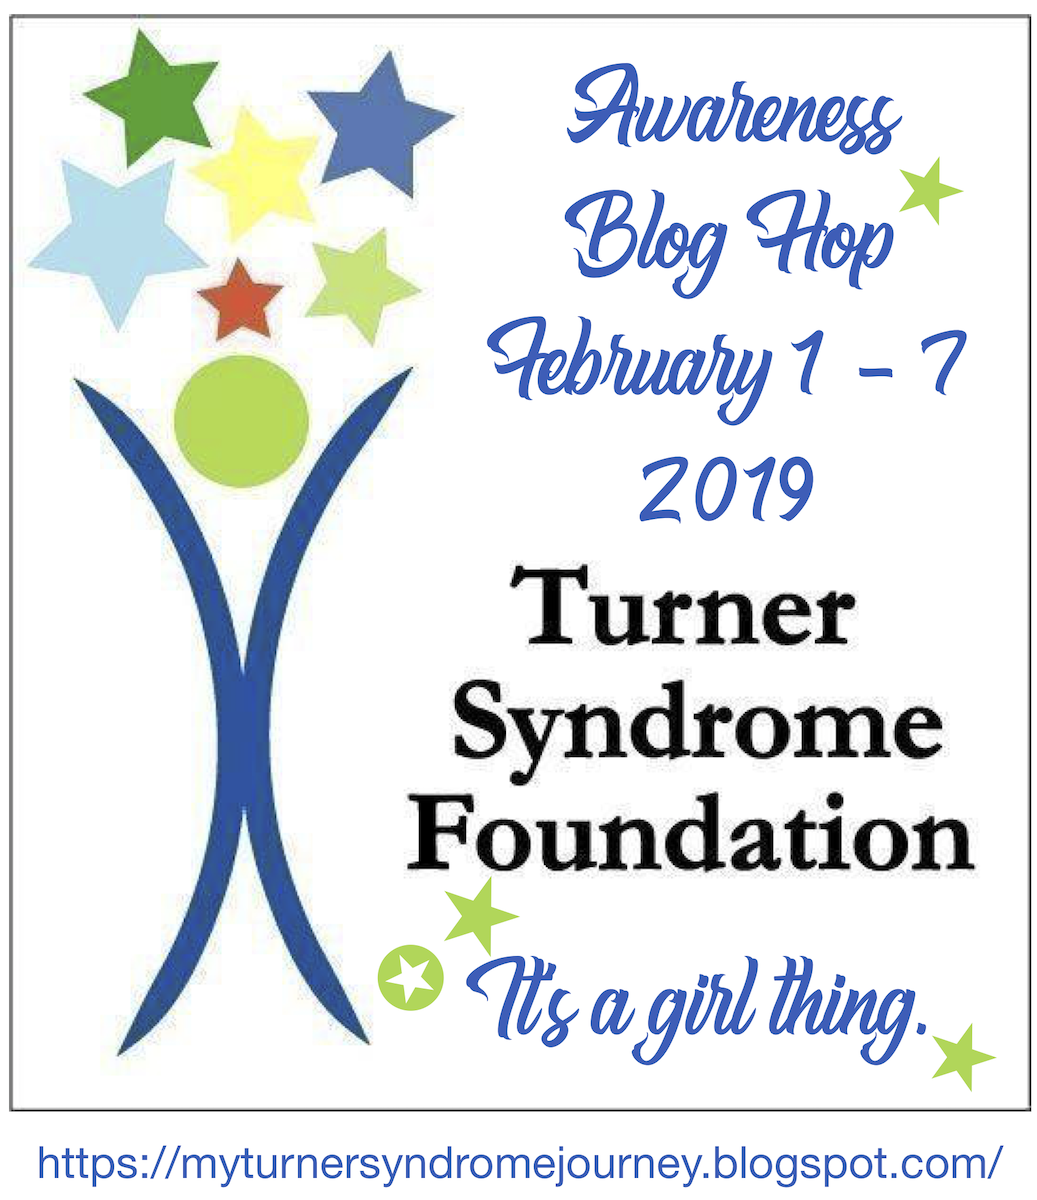 Turner Syndrome Awareness